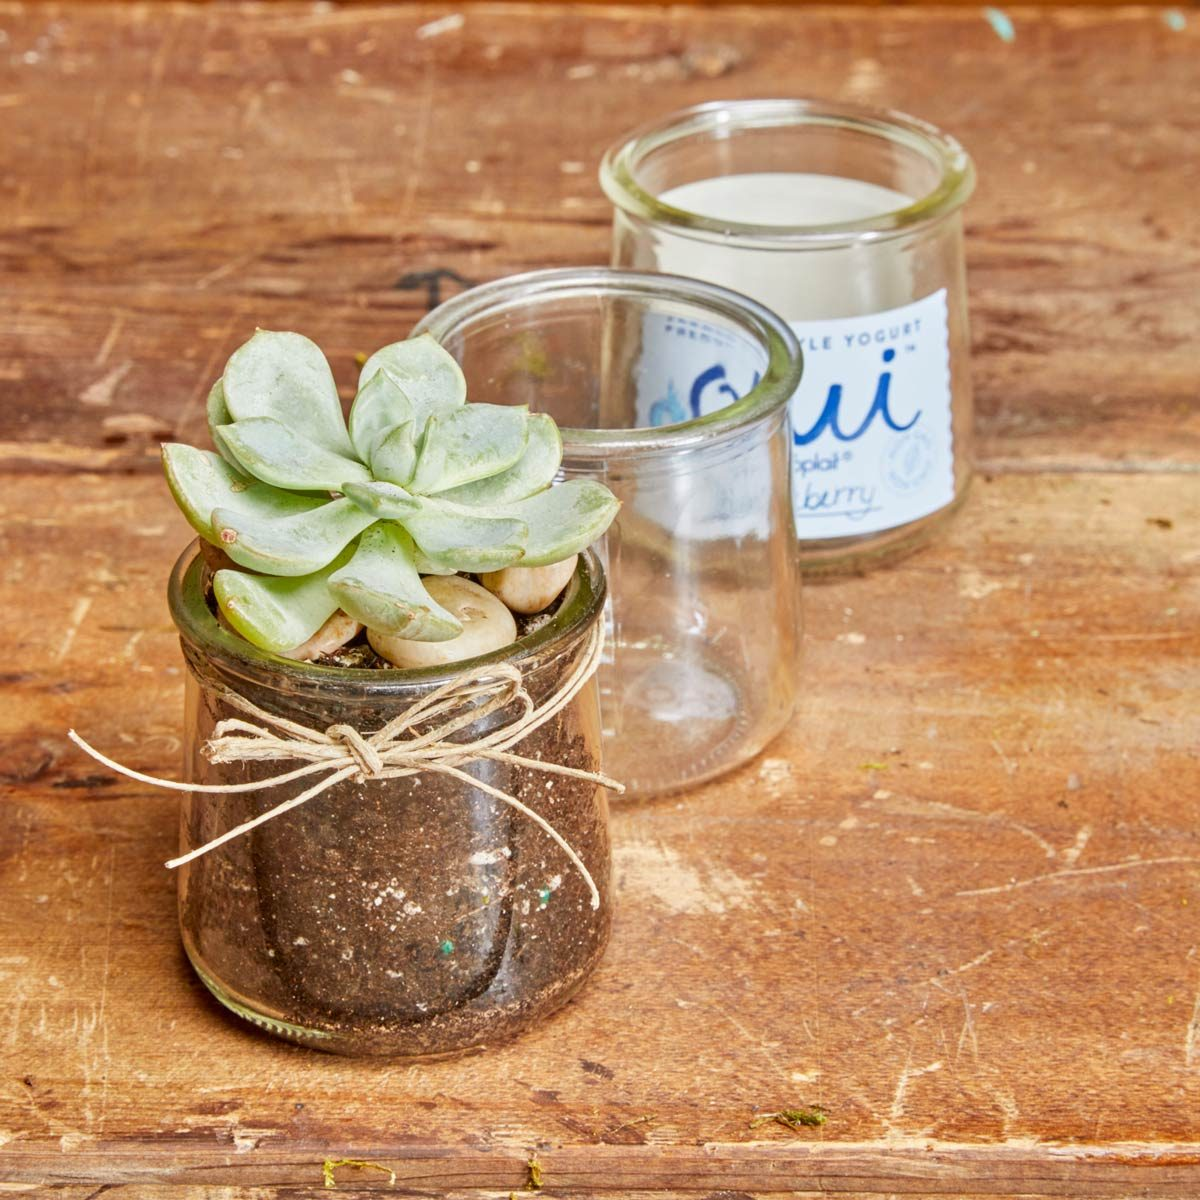 Planting Succulents In Recycled Glass Jars Diy Family Handyman